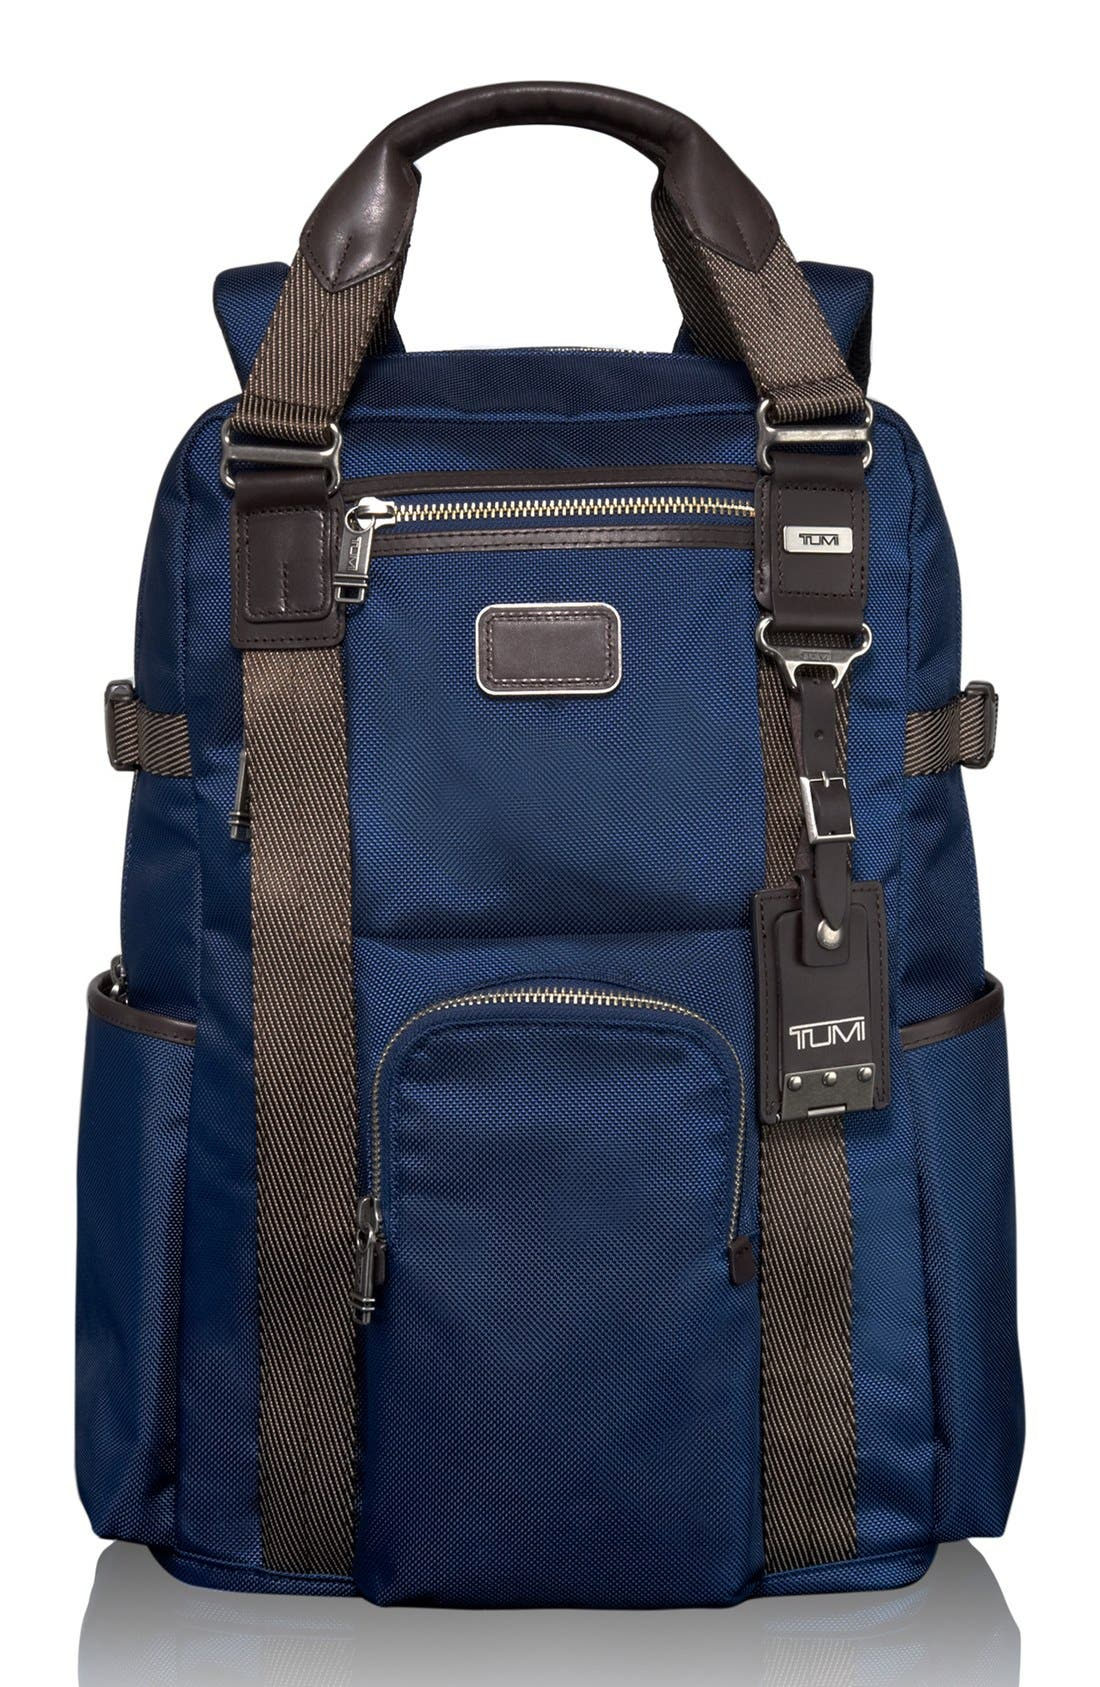 Main Image - Tumi 'Alpha Bravo - Lejeune' Backpack Tote